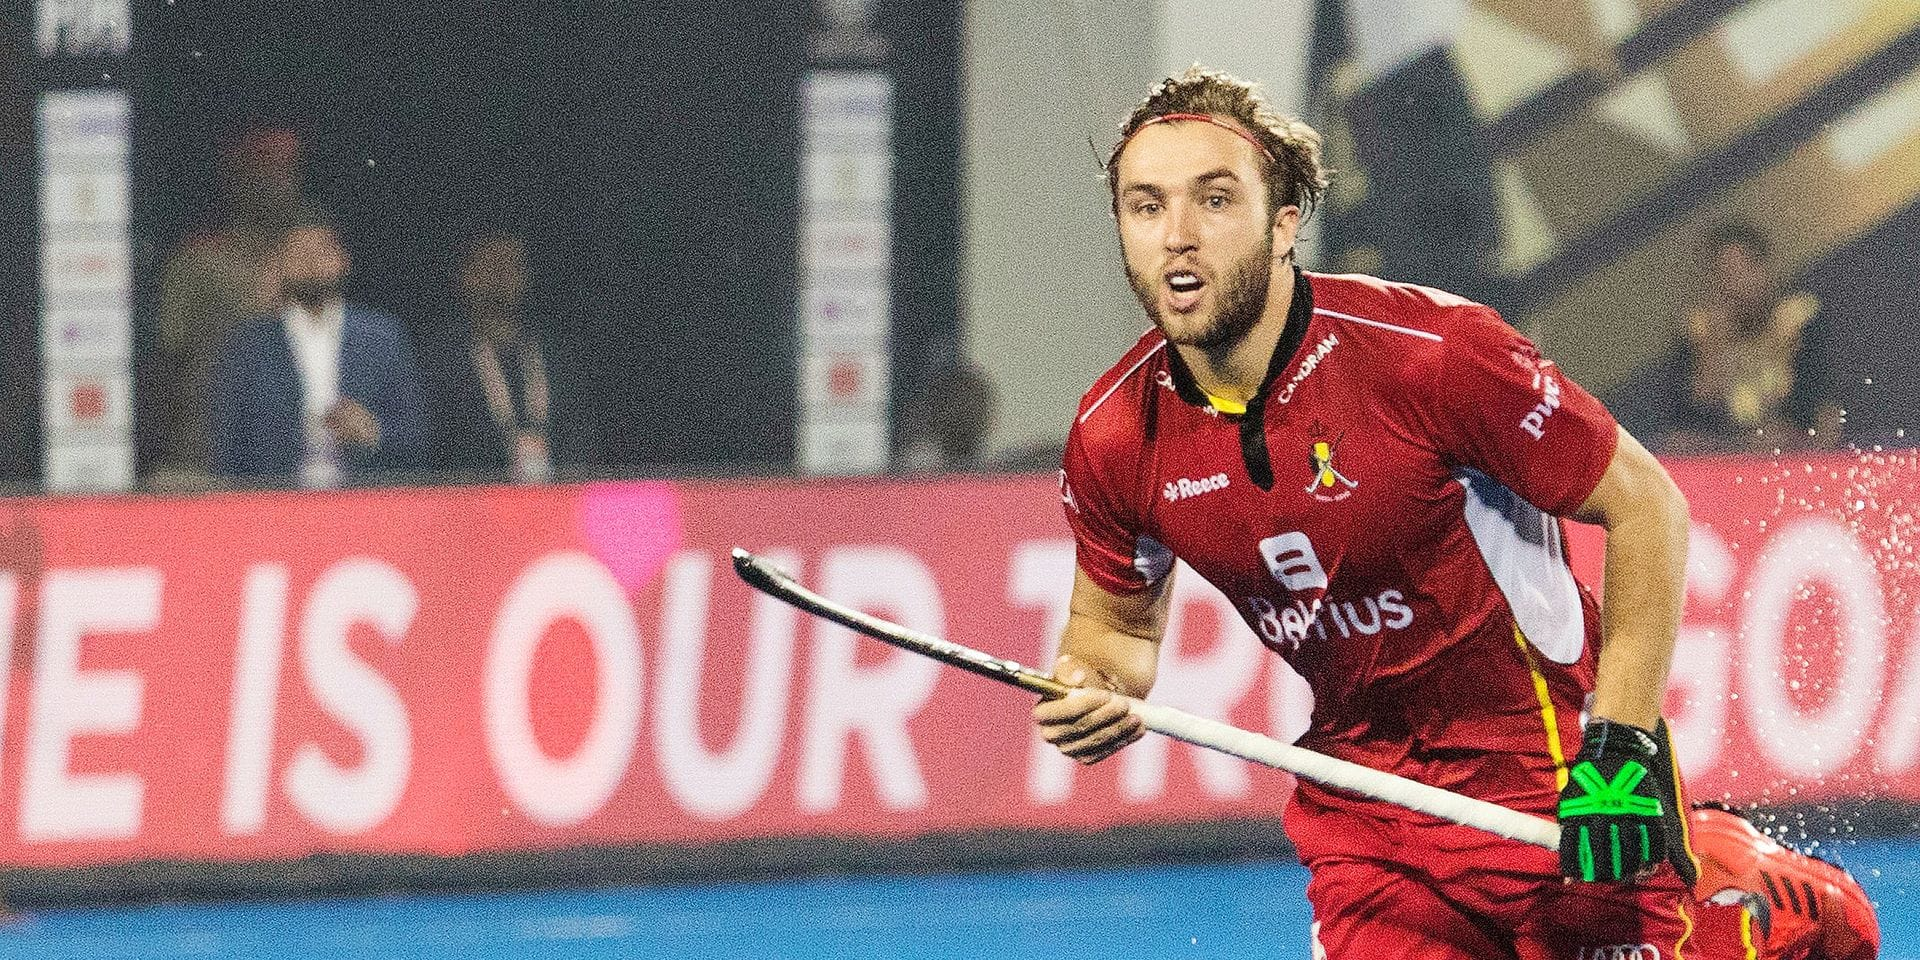 """Red Lion Emmanuel Stockbroekx in action during the Hockey World Cup 2018, in Bhubaneswar, India. on the picture regarding the Belga article """"Manu Stockbroekx blesse aux ischio-jambiers, Antoine Kina rappele par precaution"""", 02/12/2018 21:10, in BRUSSELS. BEST QUALITY AVAILABLE - BELGA PHOTO DANIEL TECHY"""